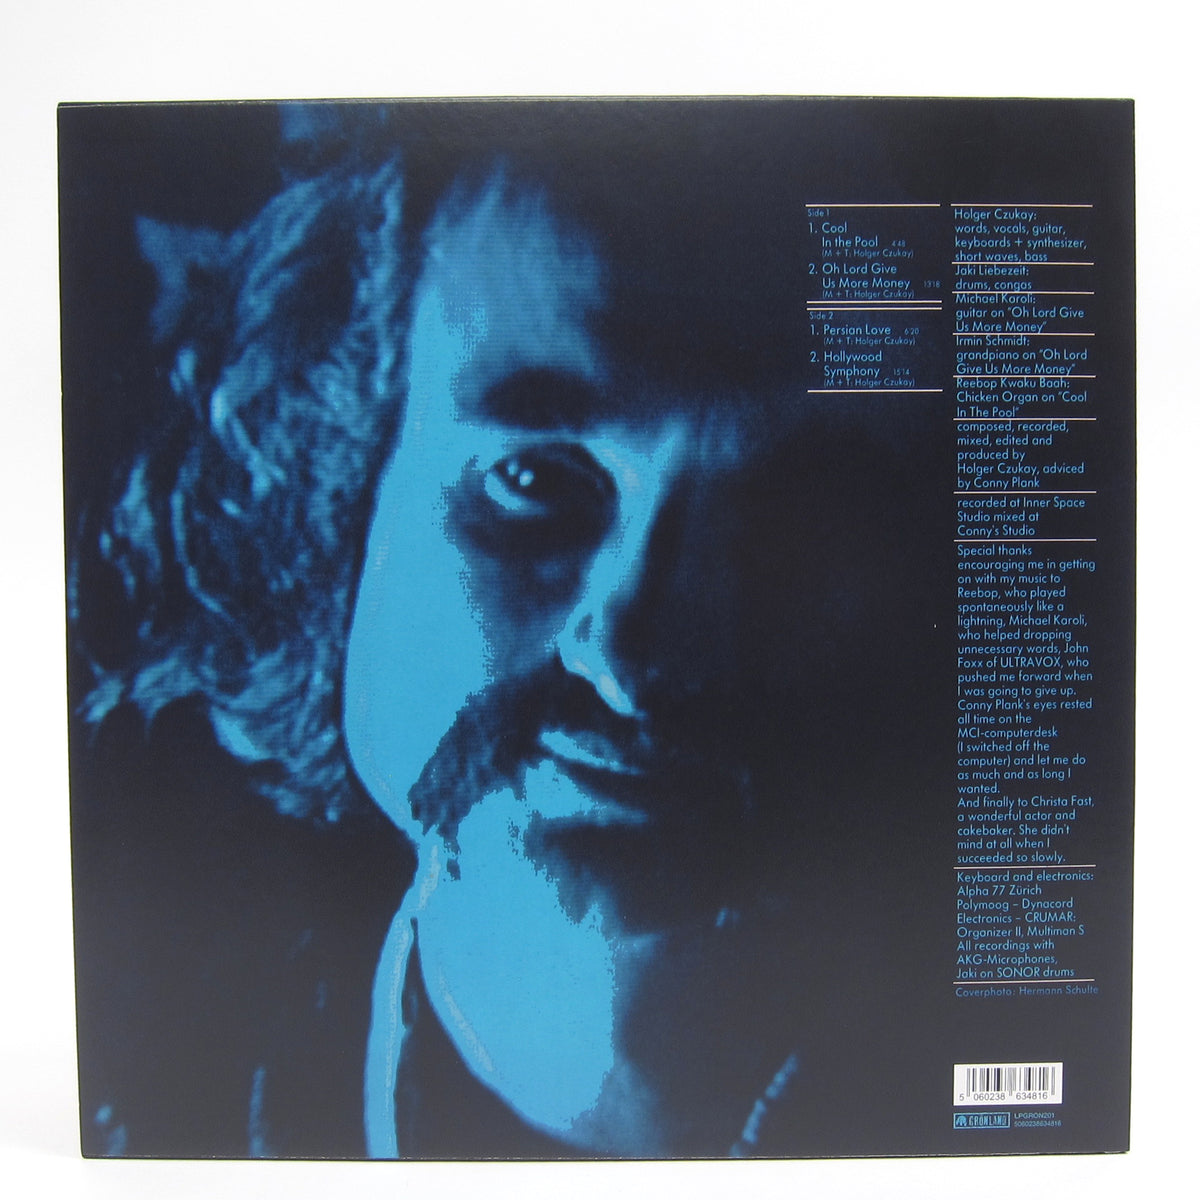 Holger Czukay: Movies Vinyl LP